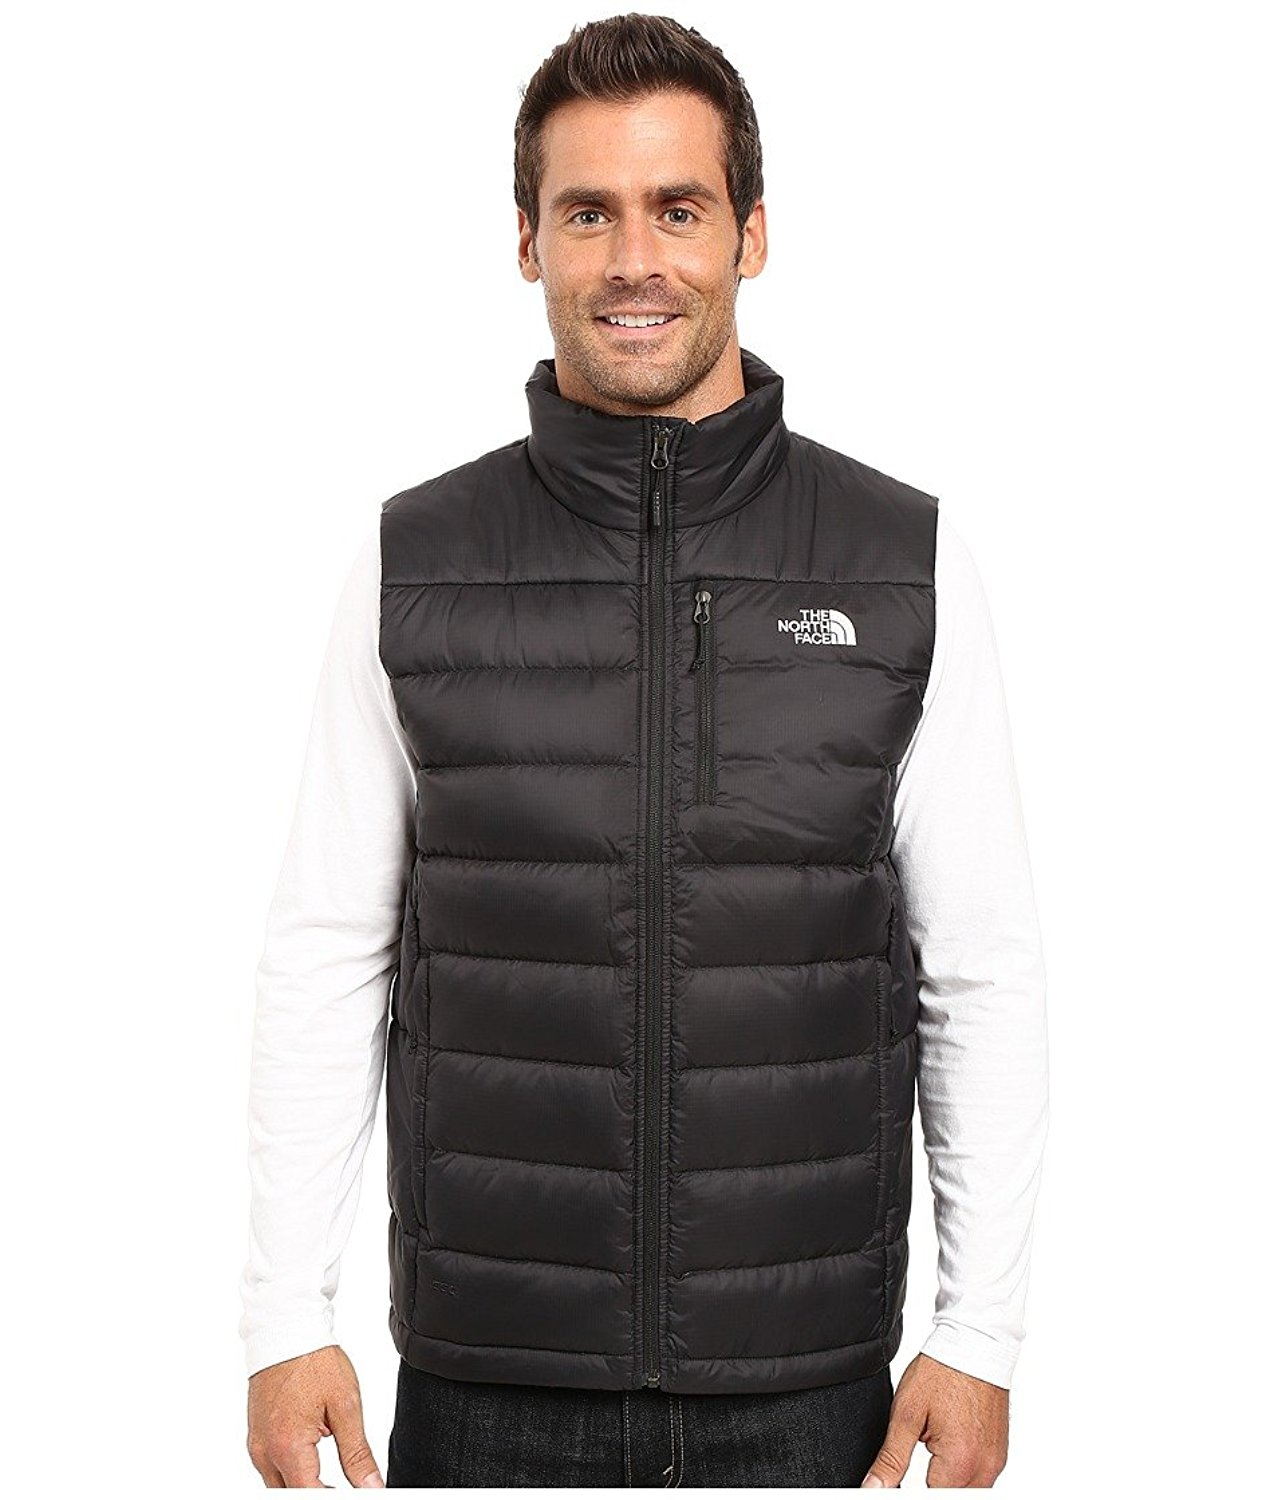 19a96eee6 Cheap North Face Aconcagua Vest, find North Face Aconcagua Vest ...